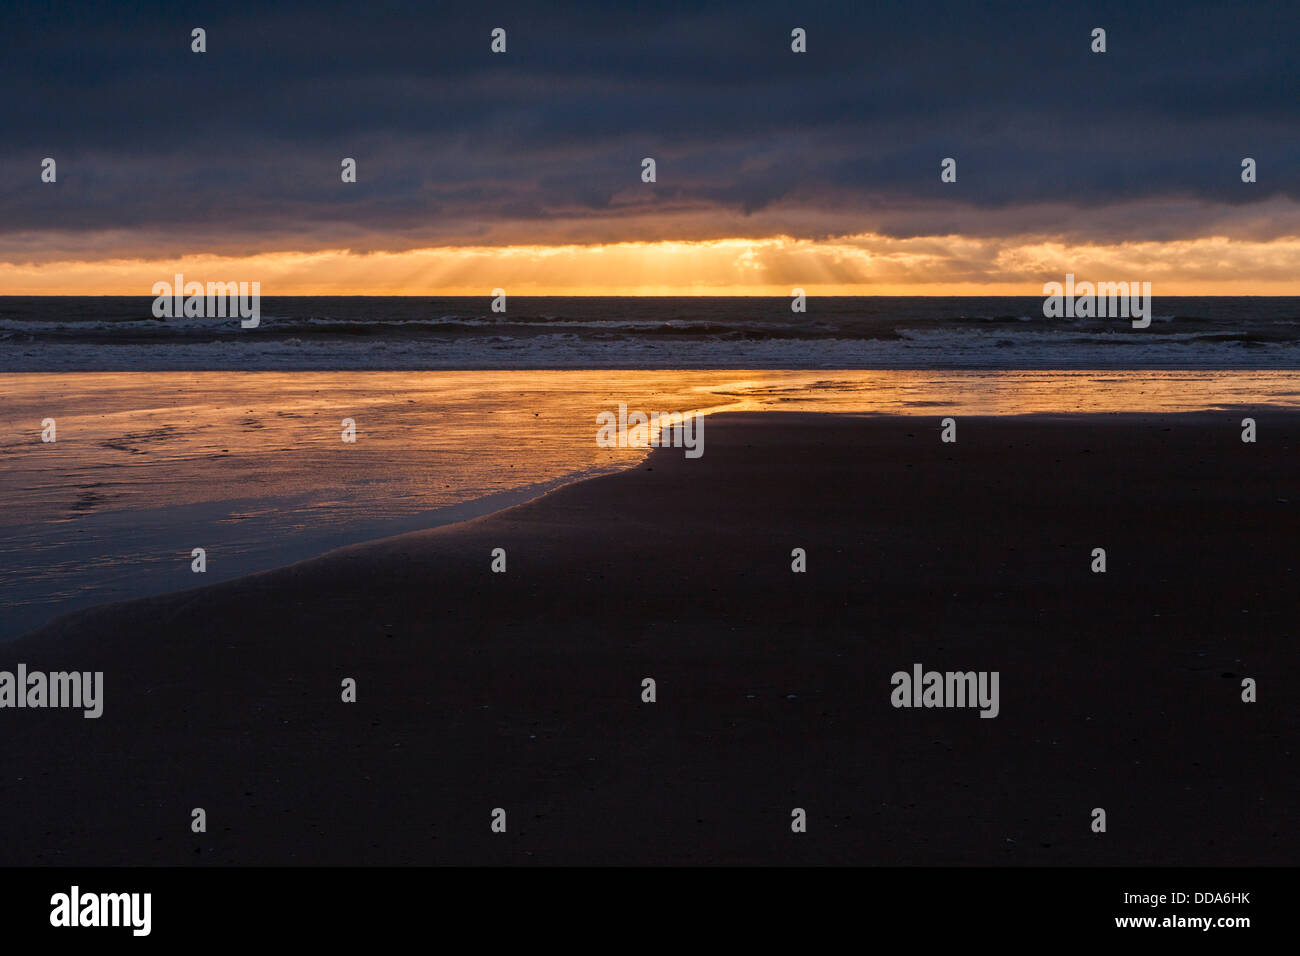 Sunset Over Water with Heavy Cloud and Rays - sunrise over Moeraki Beach, Otago New Zealand. - Stock Image